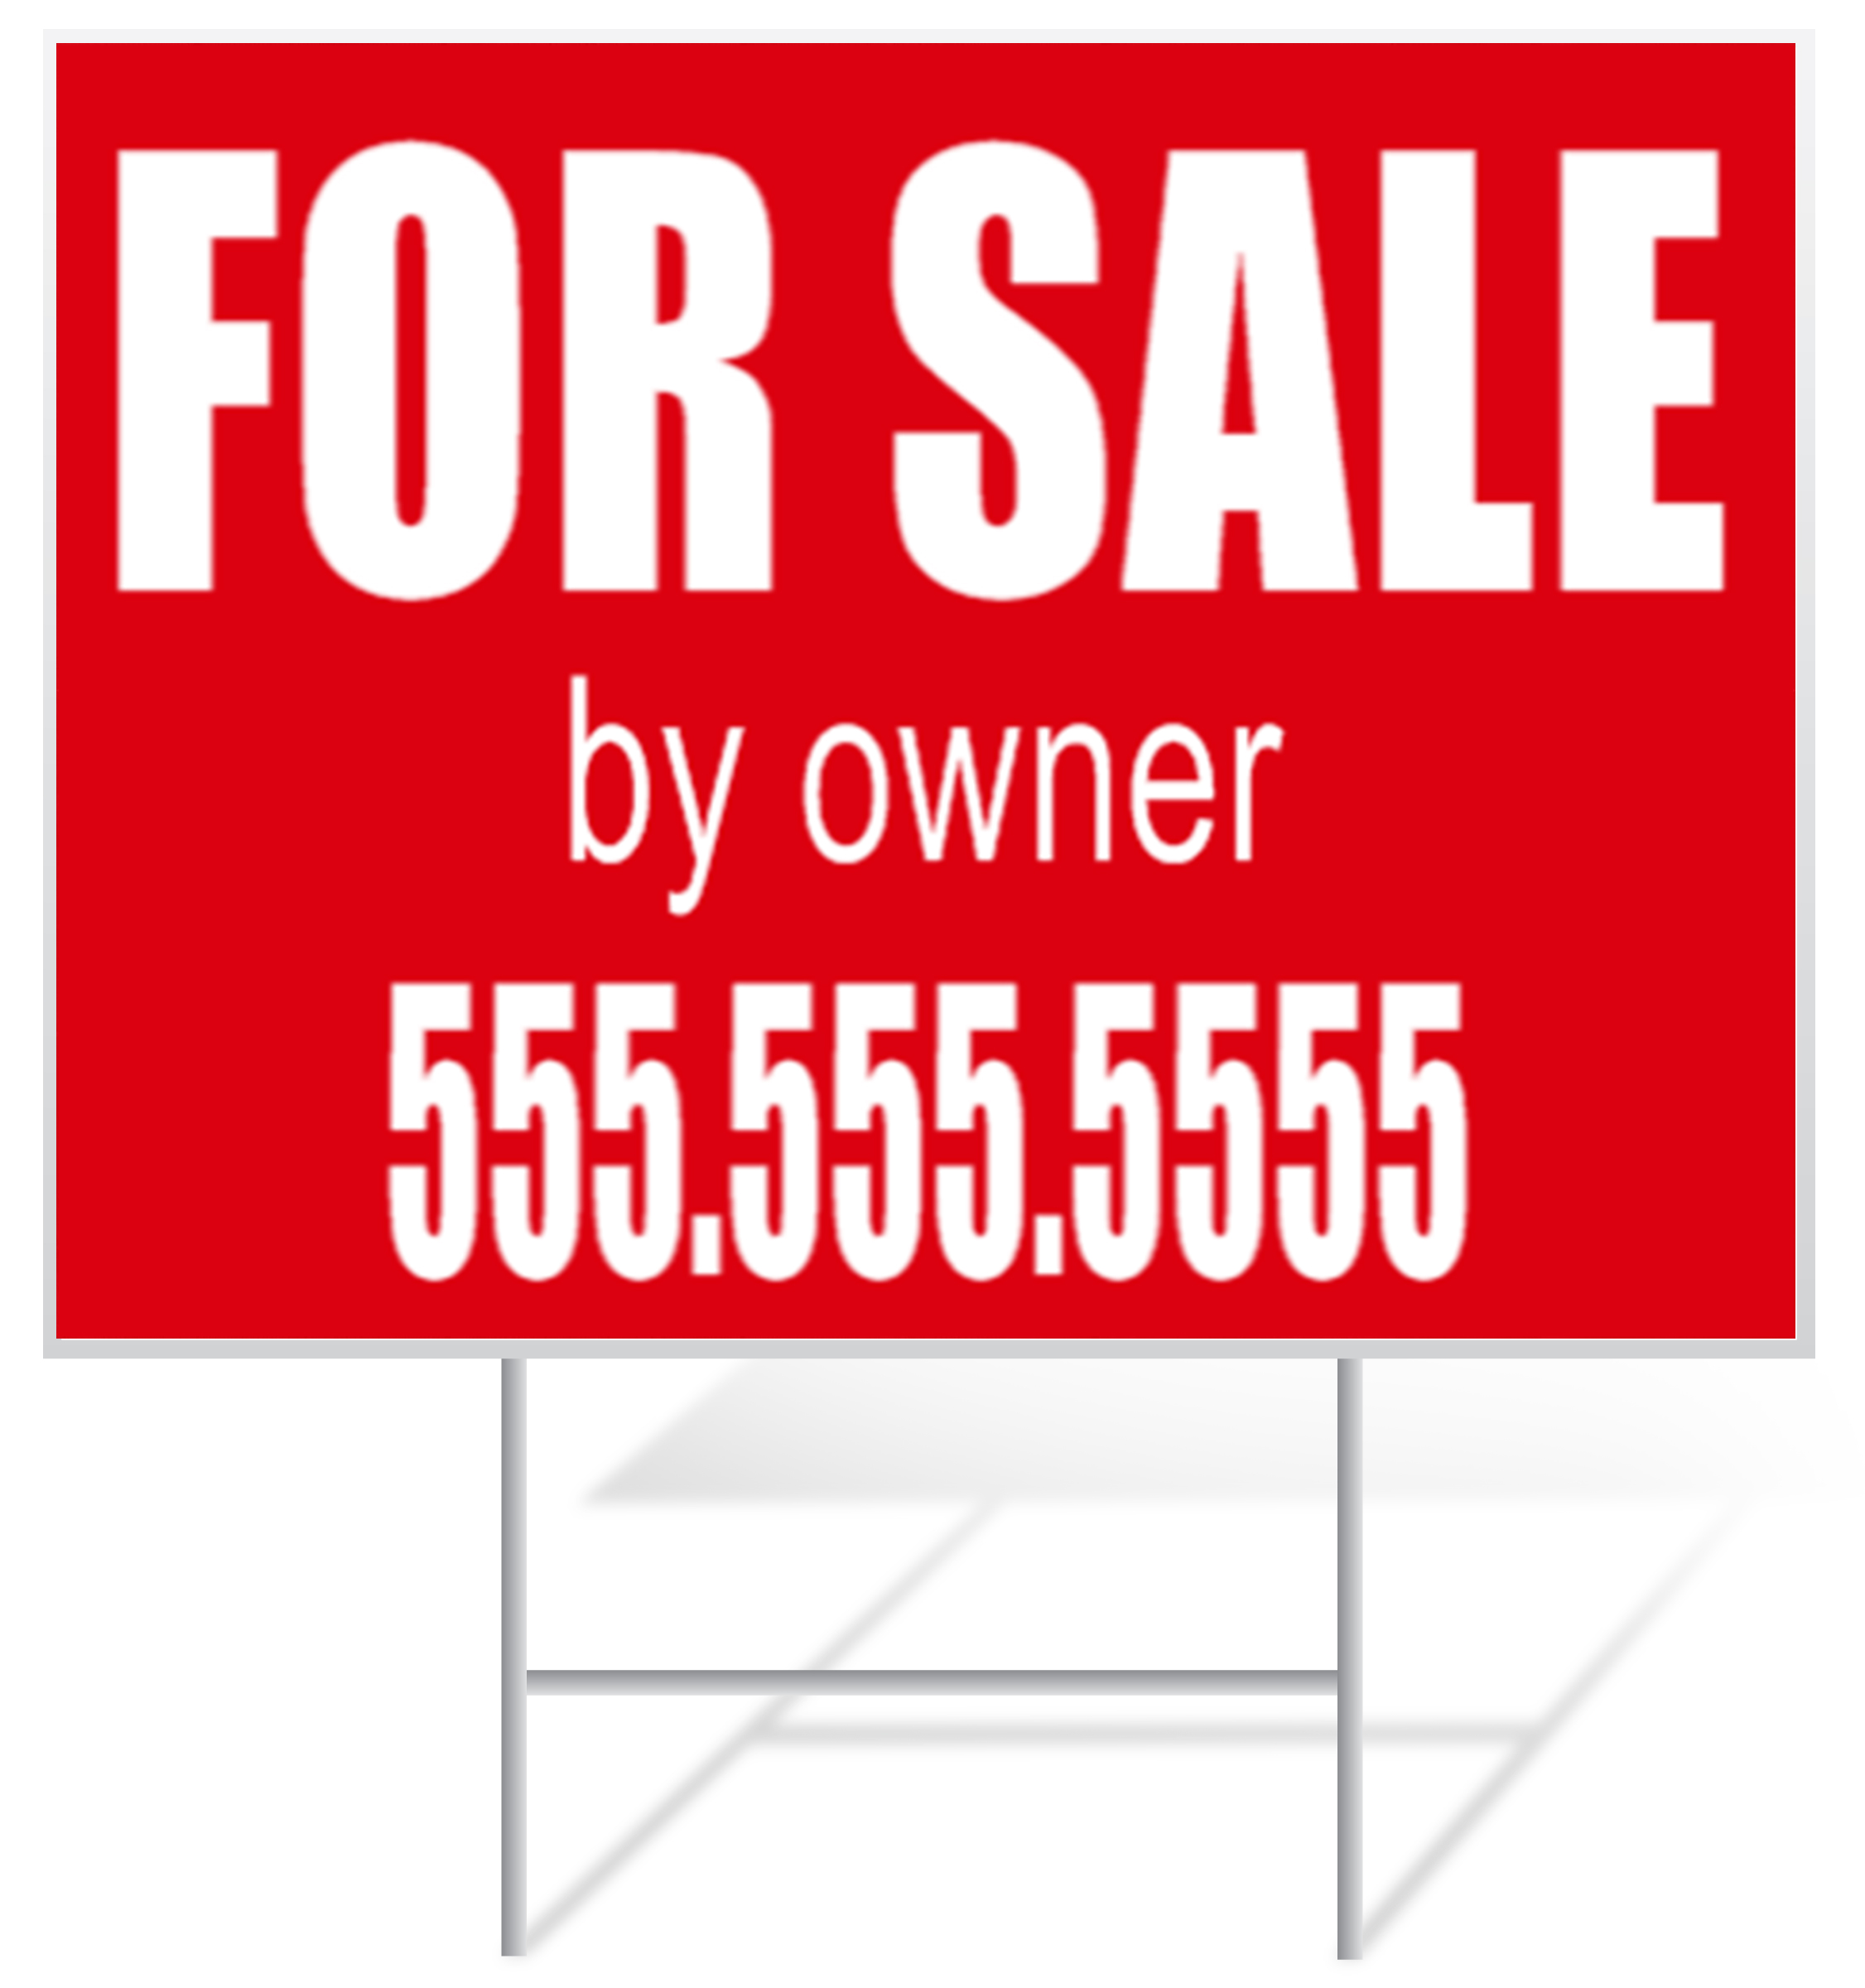 For Sale Lawn Sign Example | LawnSigns.com